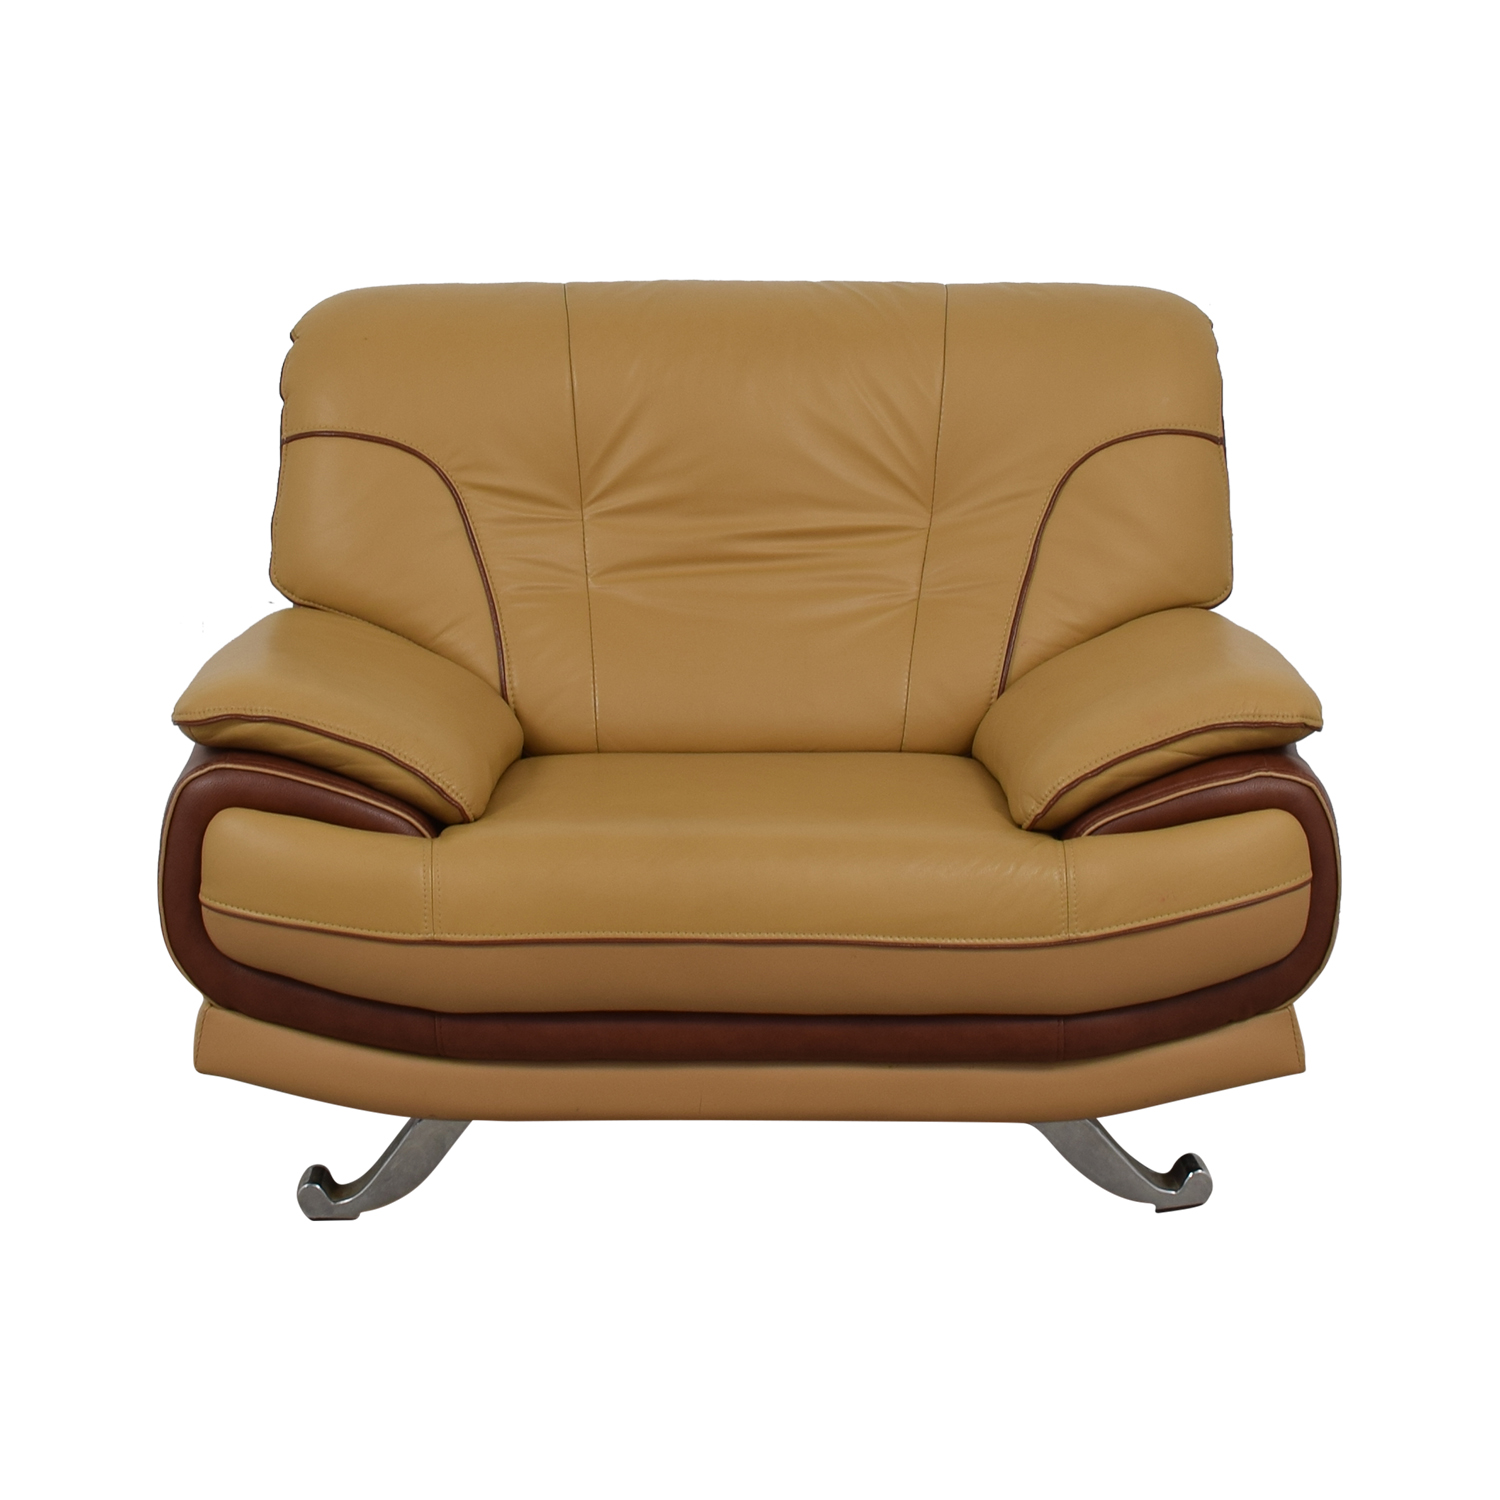 AE Furniture AE Furniture Brown and Tan Accent Chair used